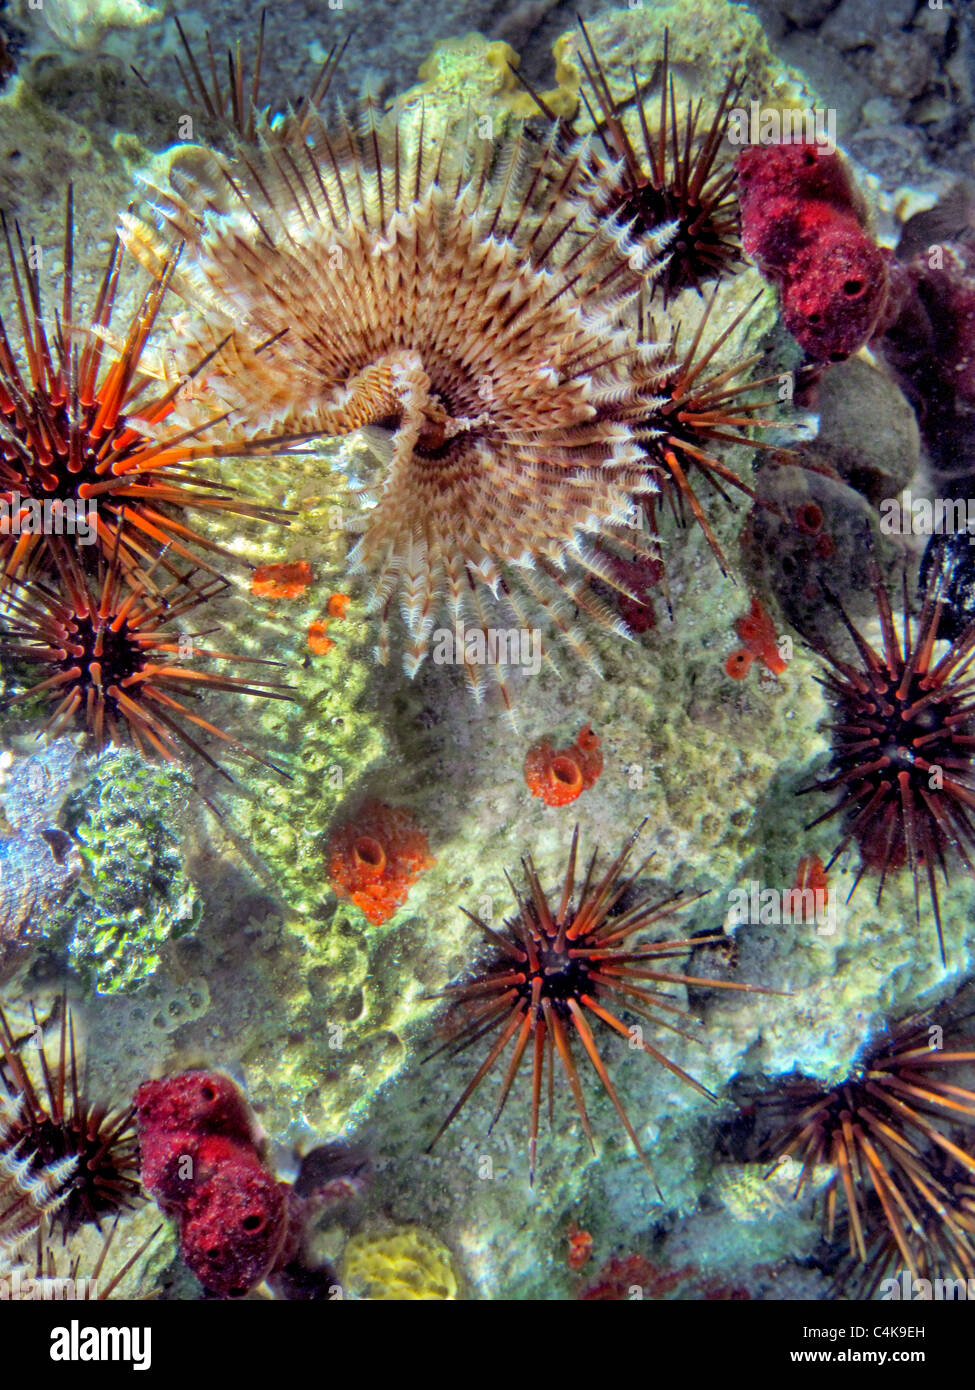 coral featherduster worm long spined sea urchin - Stock Image